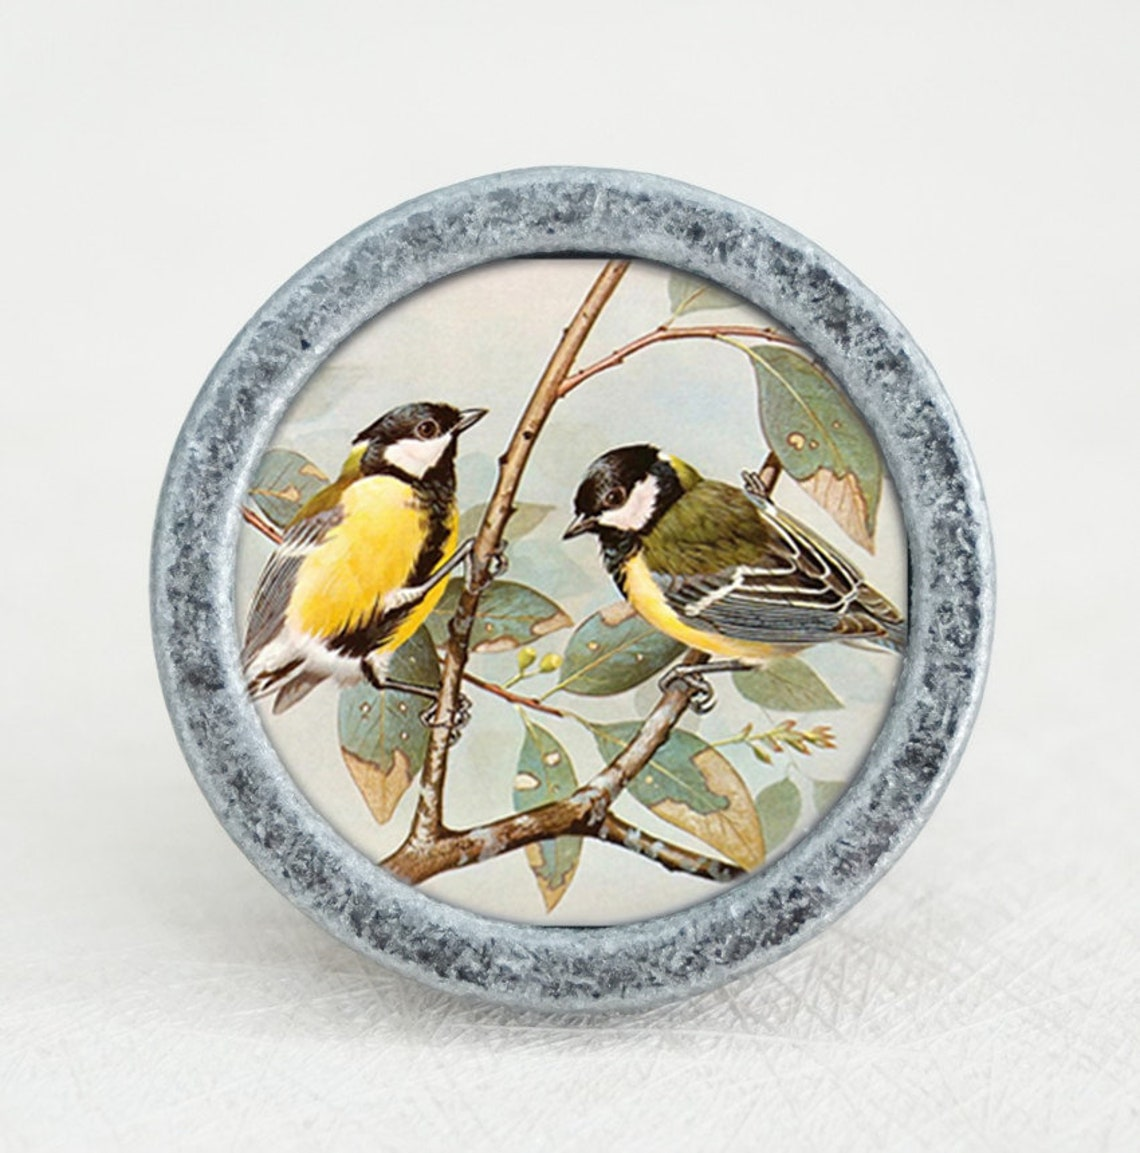 Cute Birds Knobs Vintage Drawer Dresser Knobs Handmade Cupboard Pulls Handle Chic Kitchen Cabinet Knobs Furniture Hardware